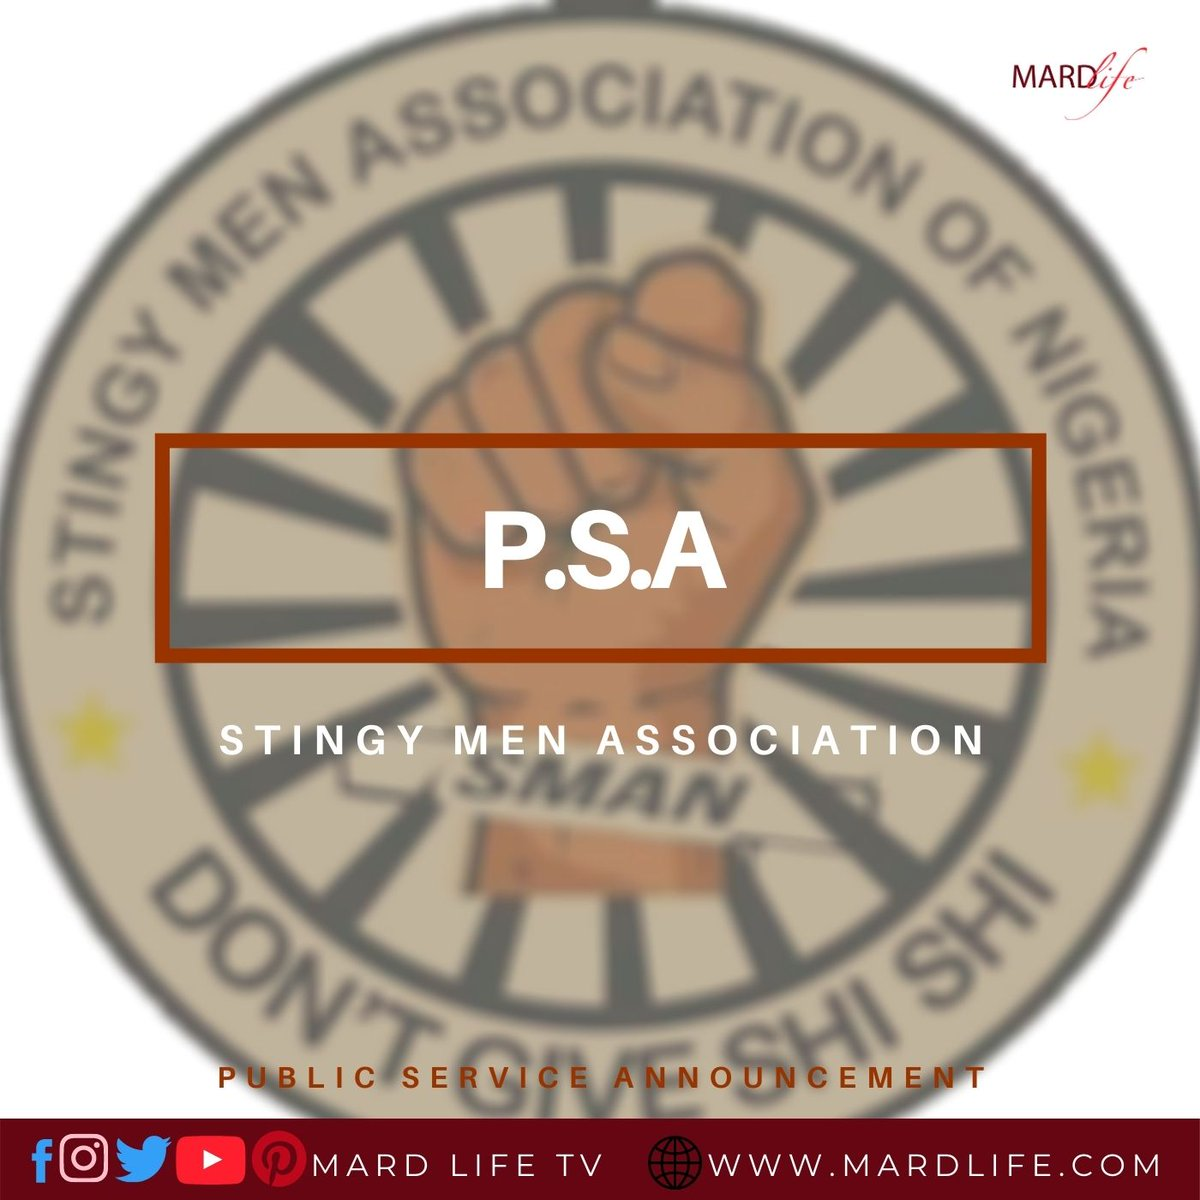 PSA: Stingy Men Association This is a public service announcement from the most honourable congregation of men, the stingy men association. https://t.co/03SuvfyKXn